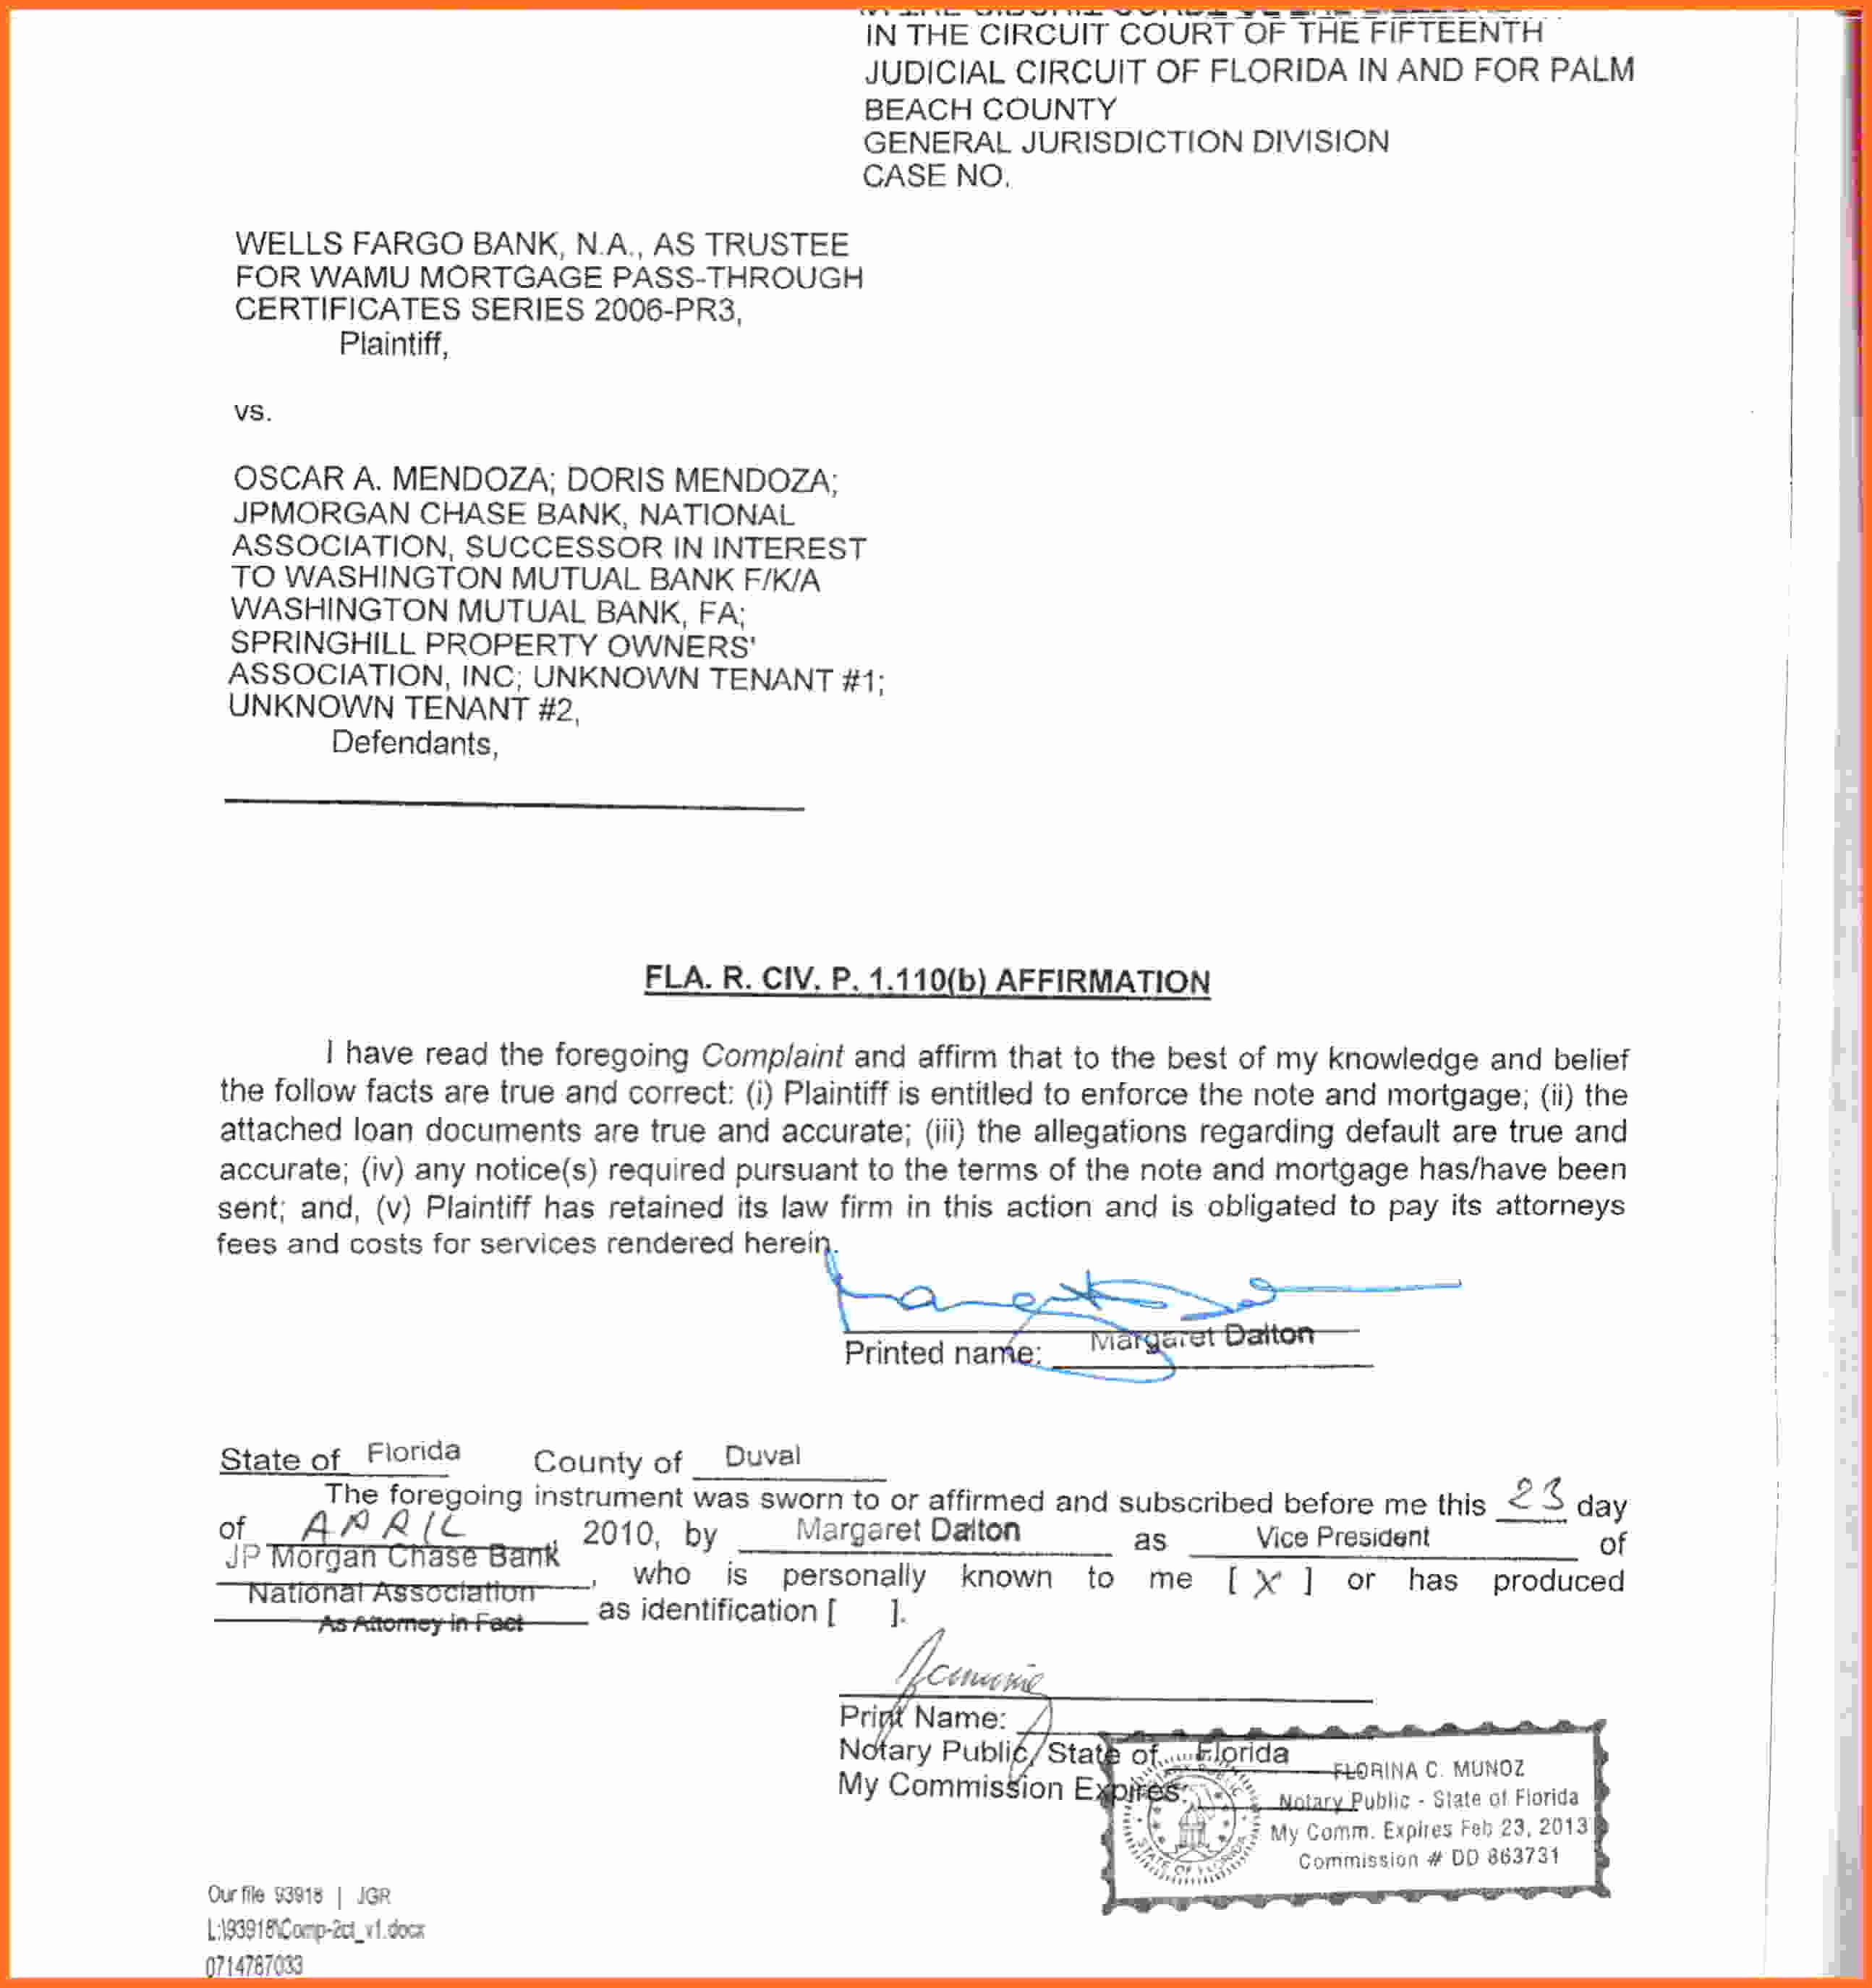 Notarized Letter Template Florida - Notarized Witness Statement Sample Lovely Affidavit forms In Pdf